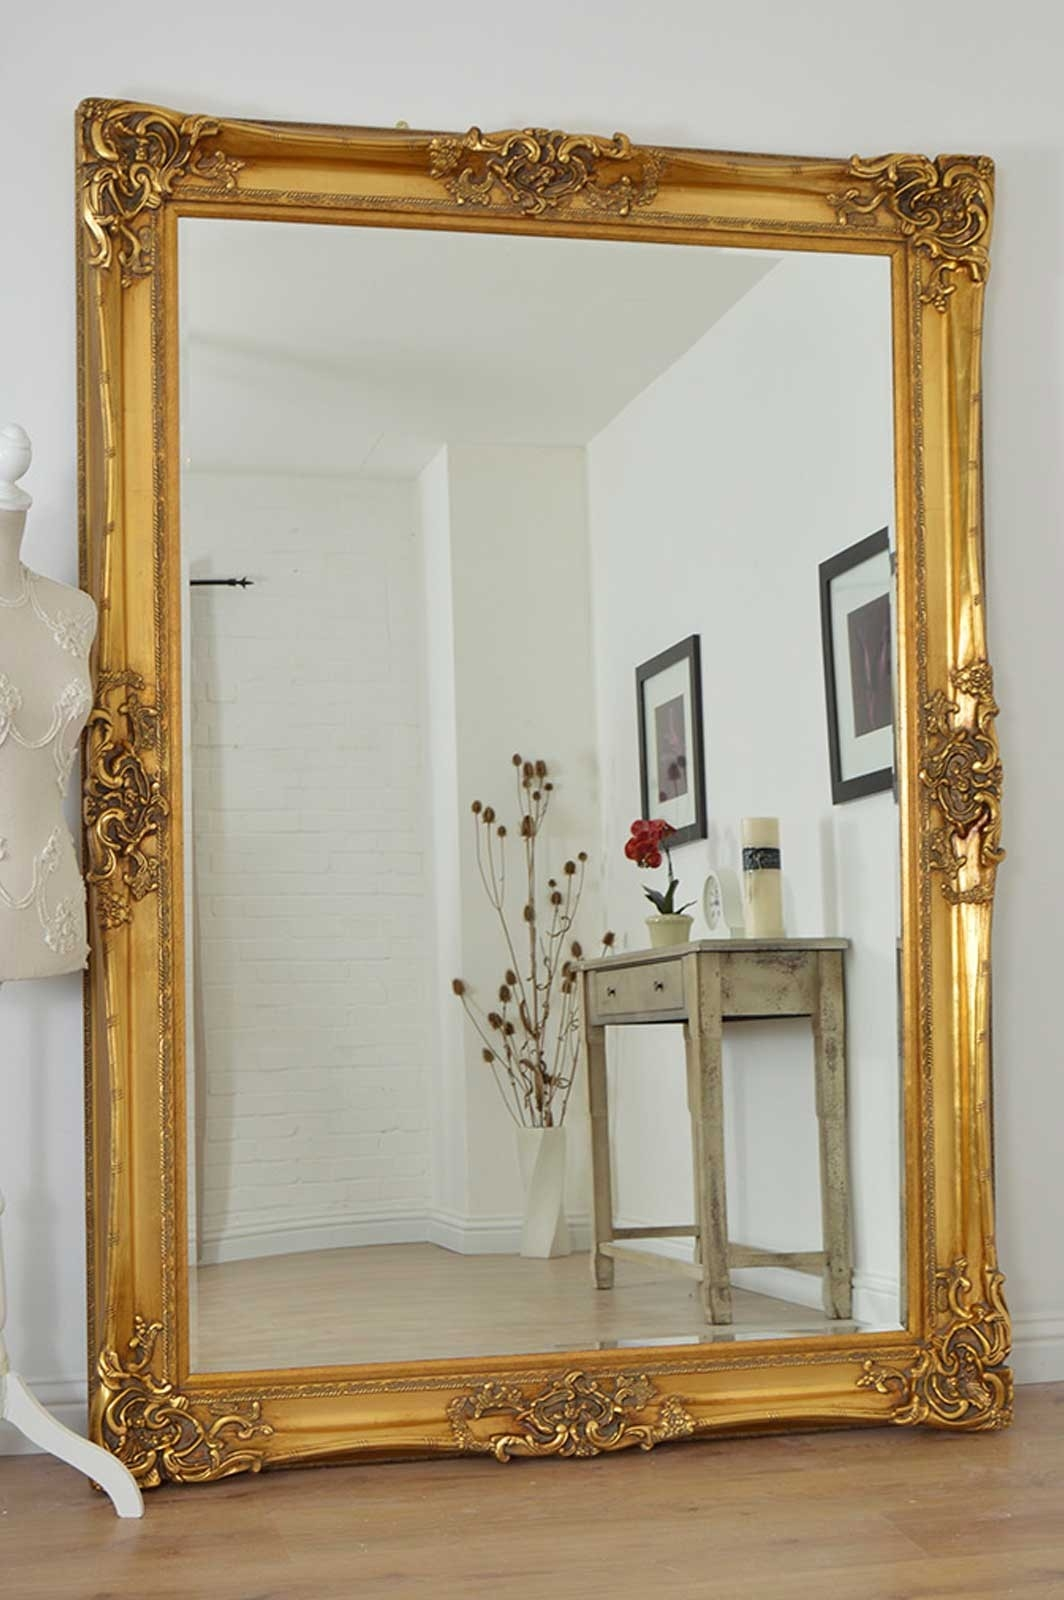 Large Gold Very Ornate Antique Design Wall Mirror 7ft X 5ft 213cm Regarding Antique Gold Mirrors Large (Image 13 of 15)